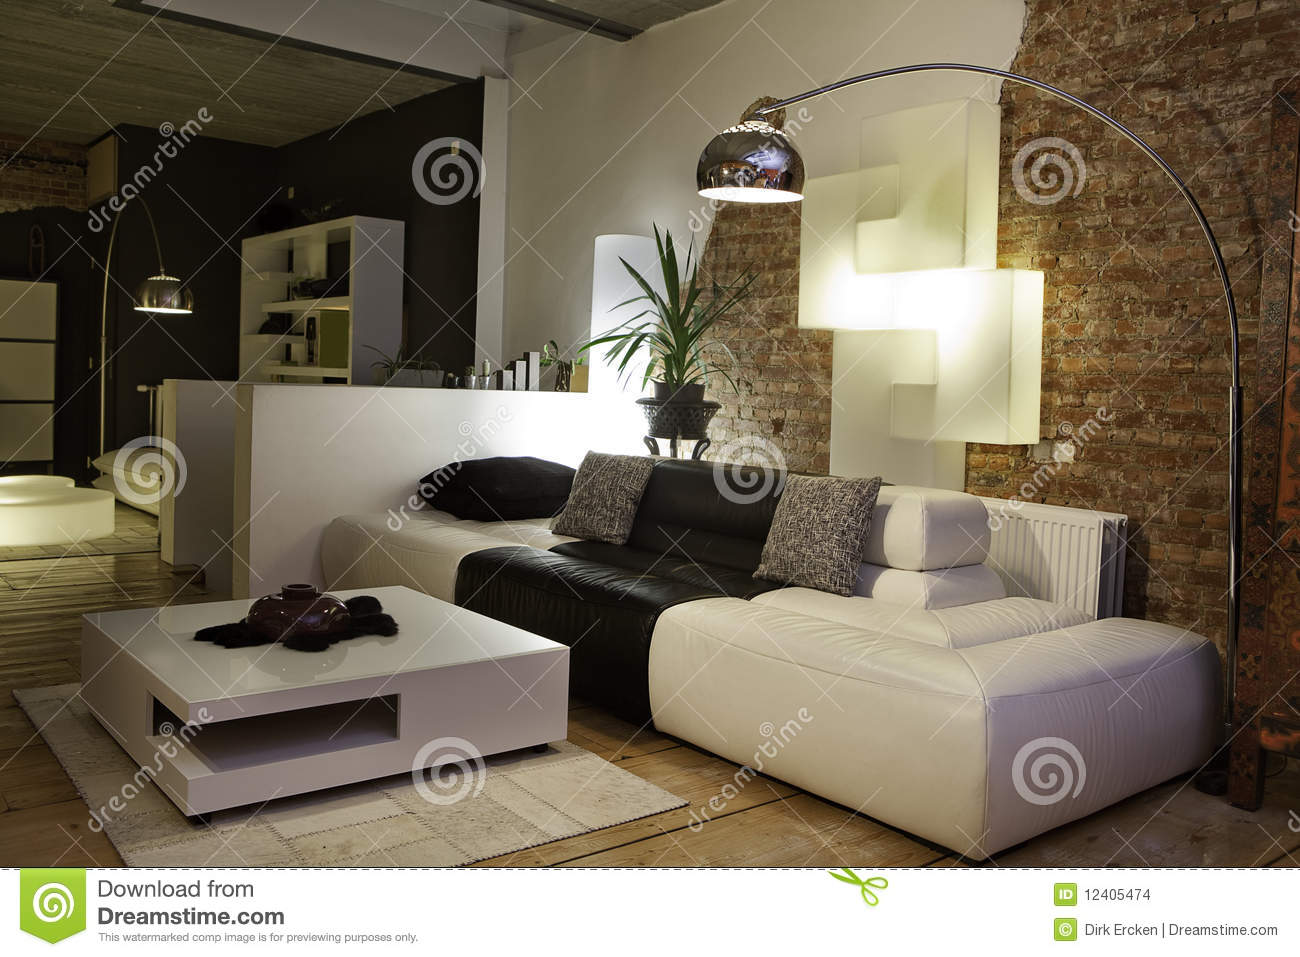 living table interior lifestyle chair white apartment floor flooring sofa couch studio windows room furniture en house images urban design photo modern contemporary home condo free decor style